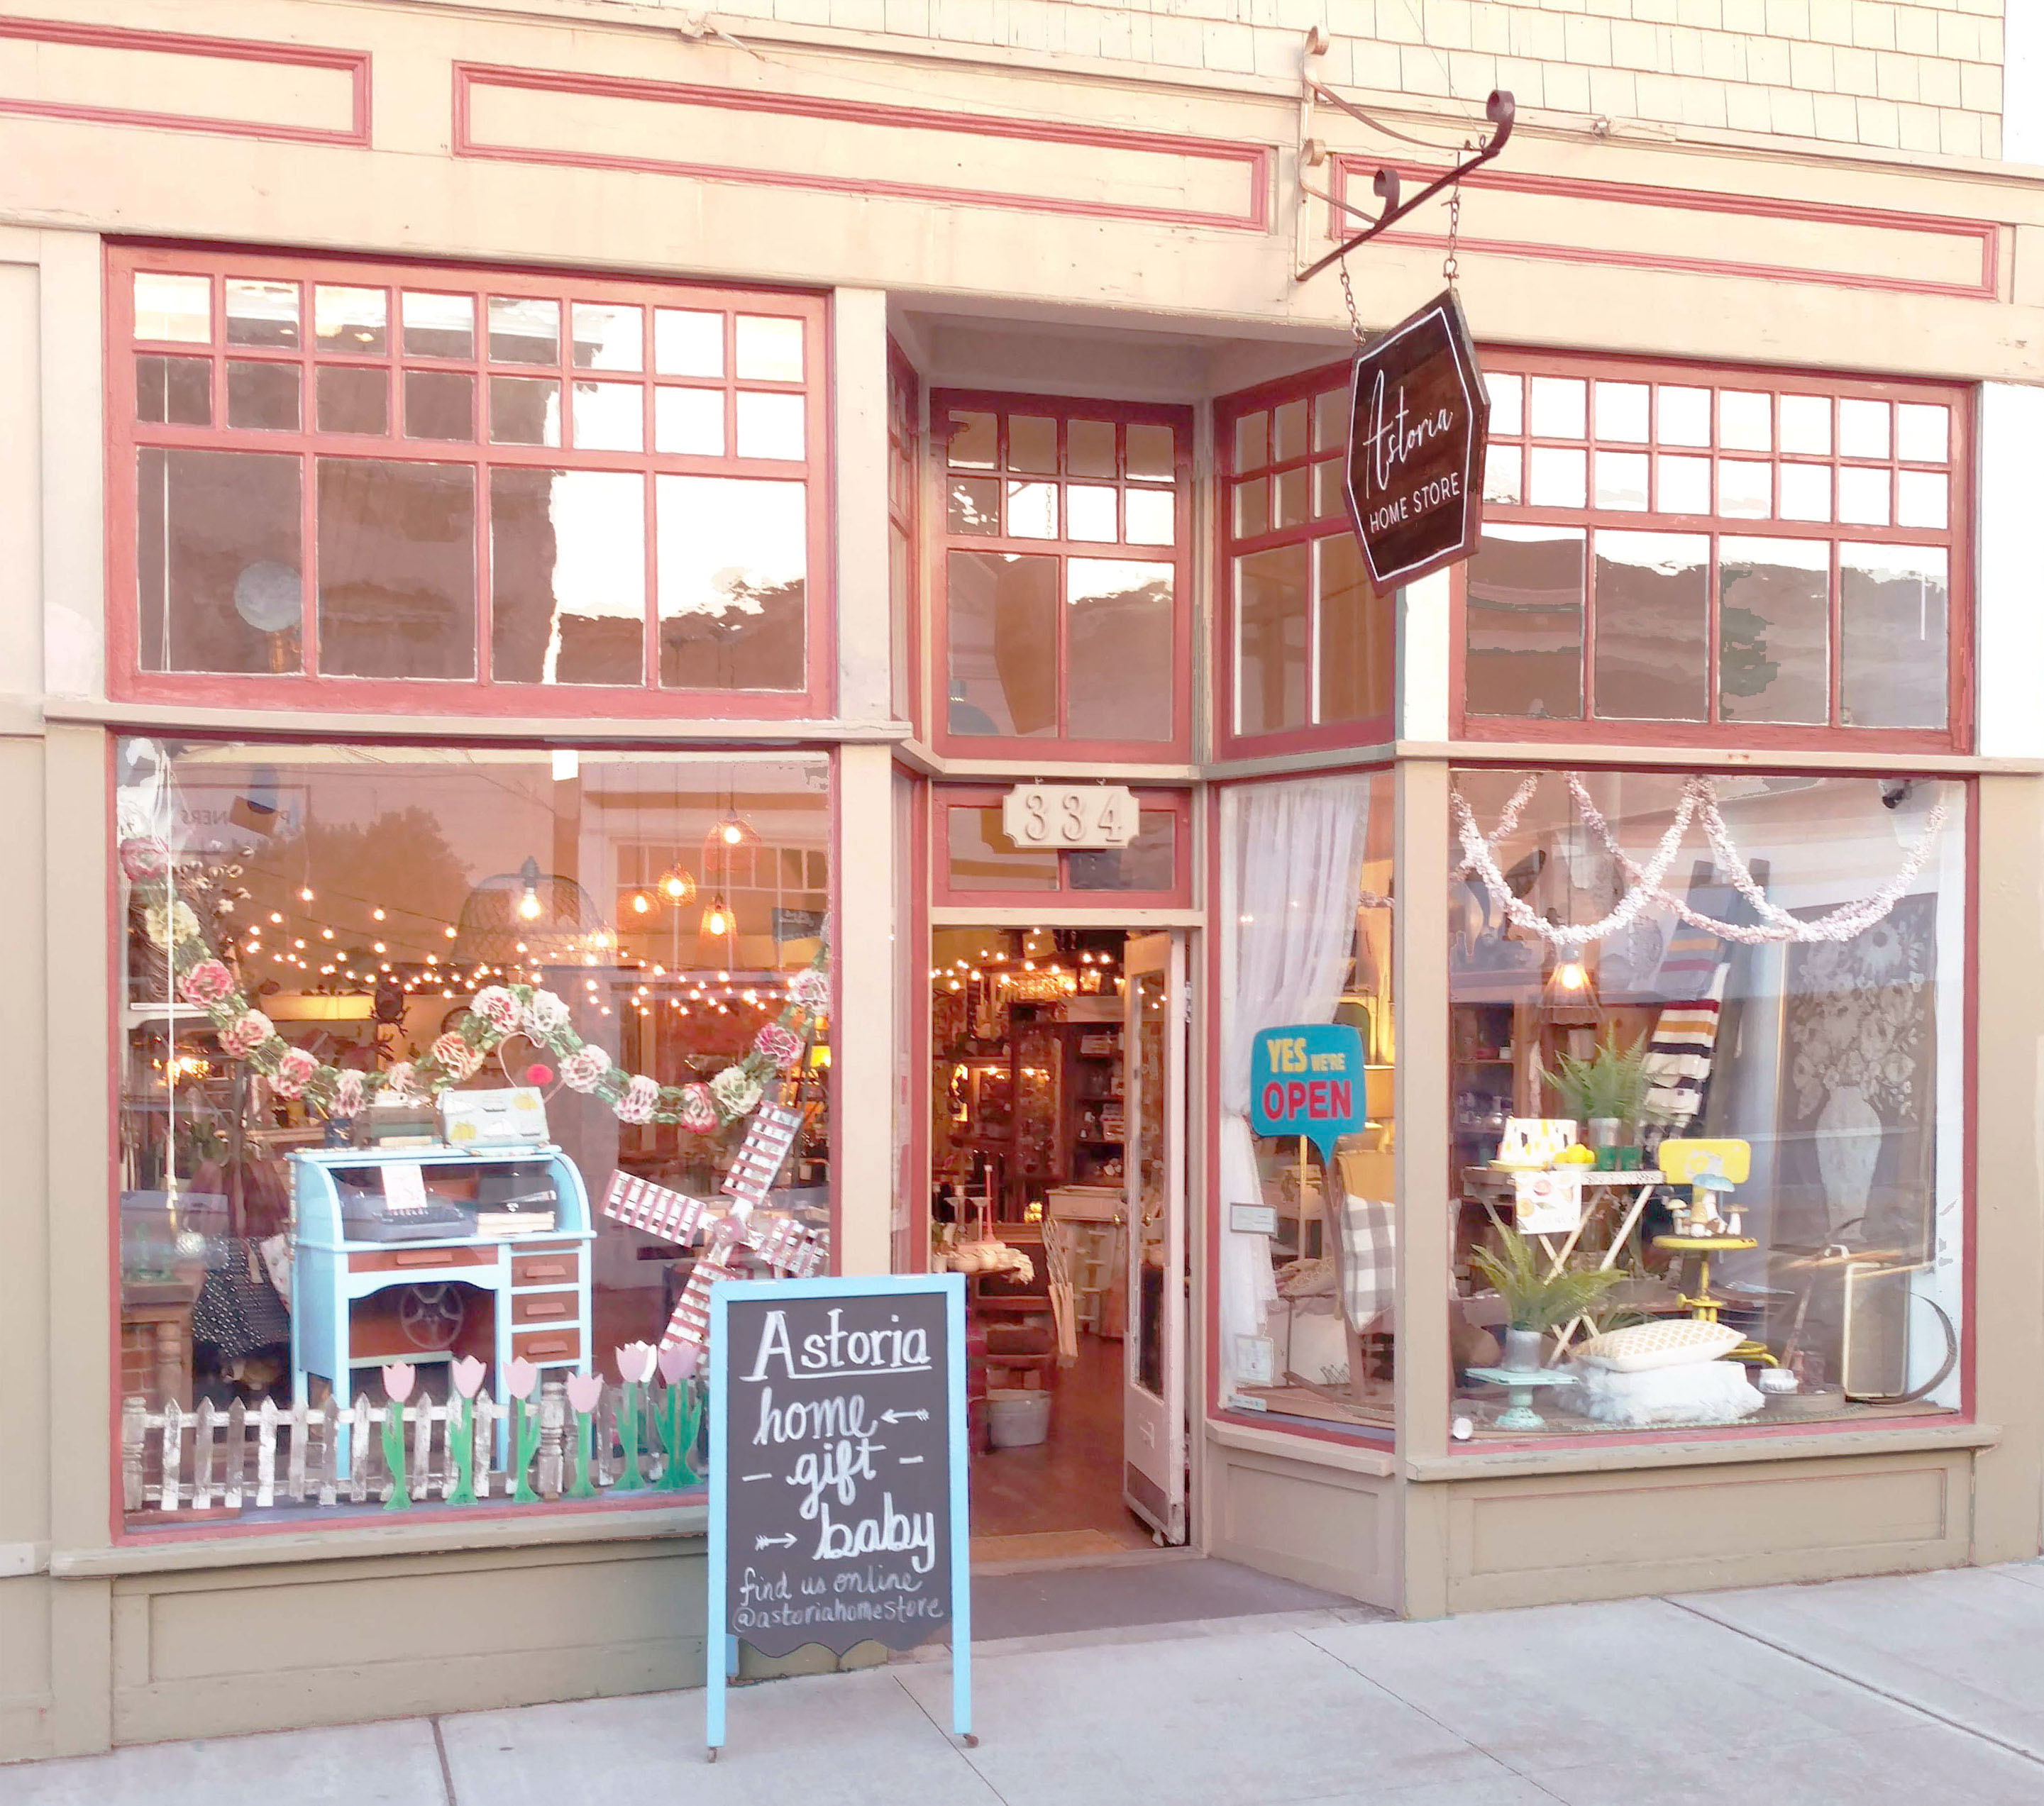 Household Stores: Astoria Home Decor And Gift Shop